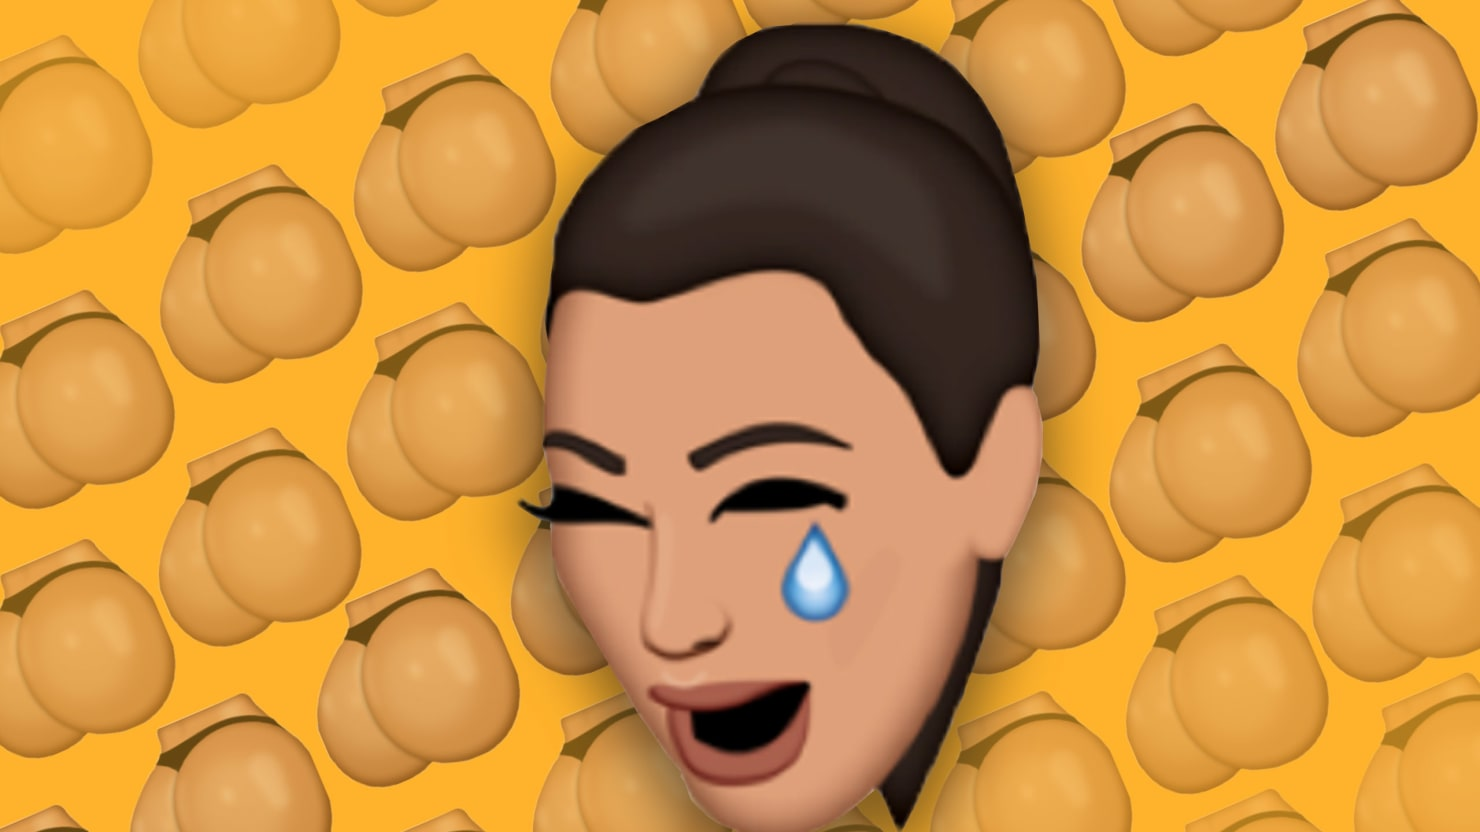 From Kim Kardashian to Justin Bieber: a Guide to Celebrity Emojis, Hollywood's Favorite New App Trend